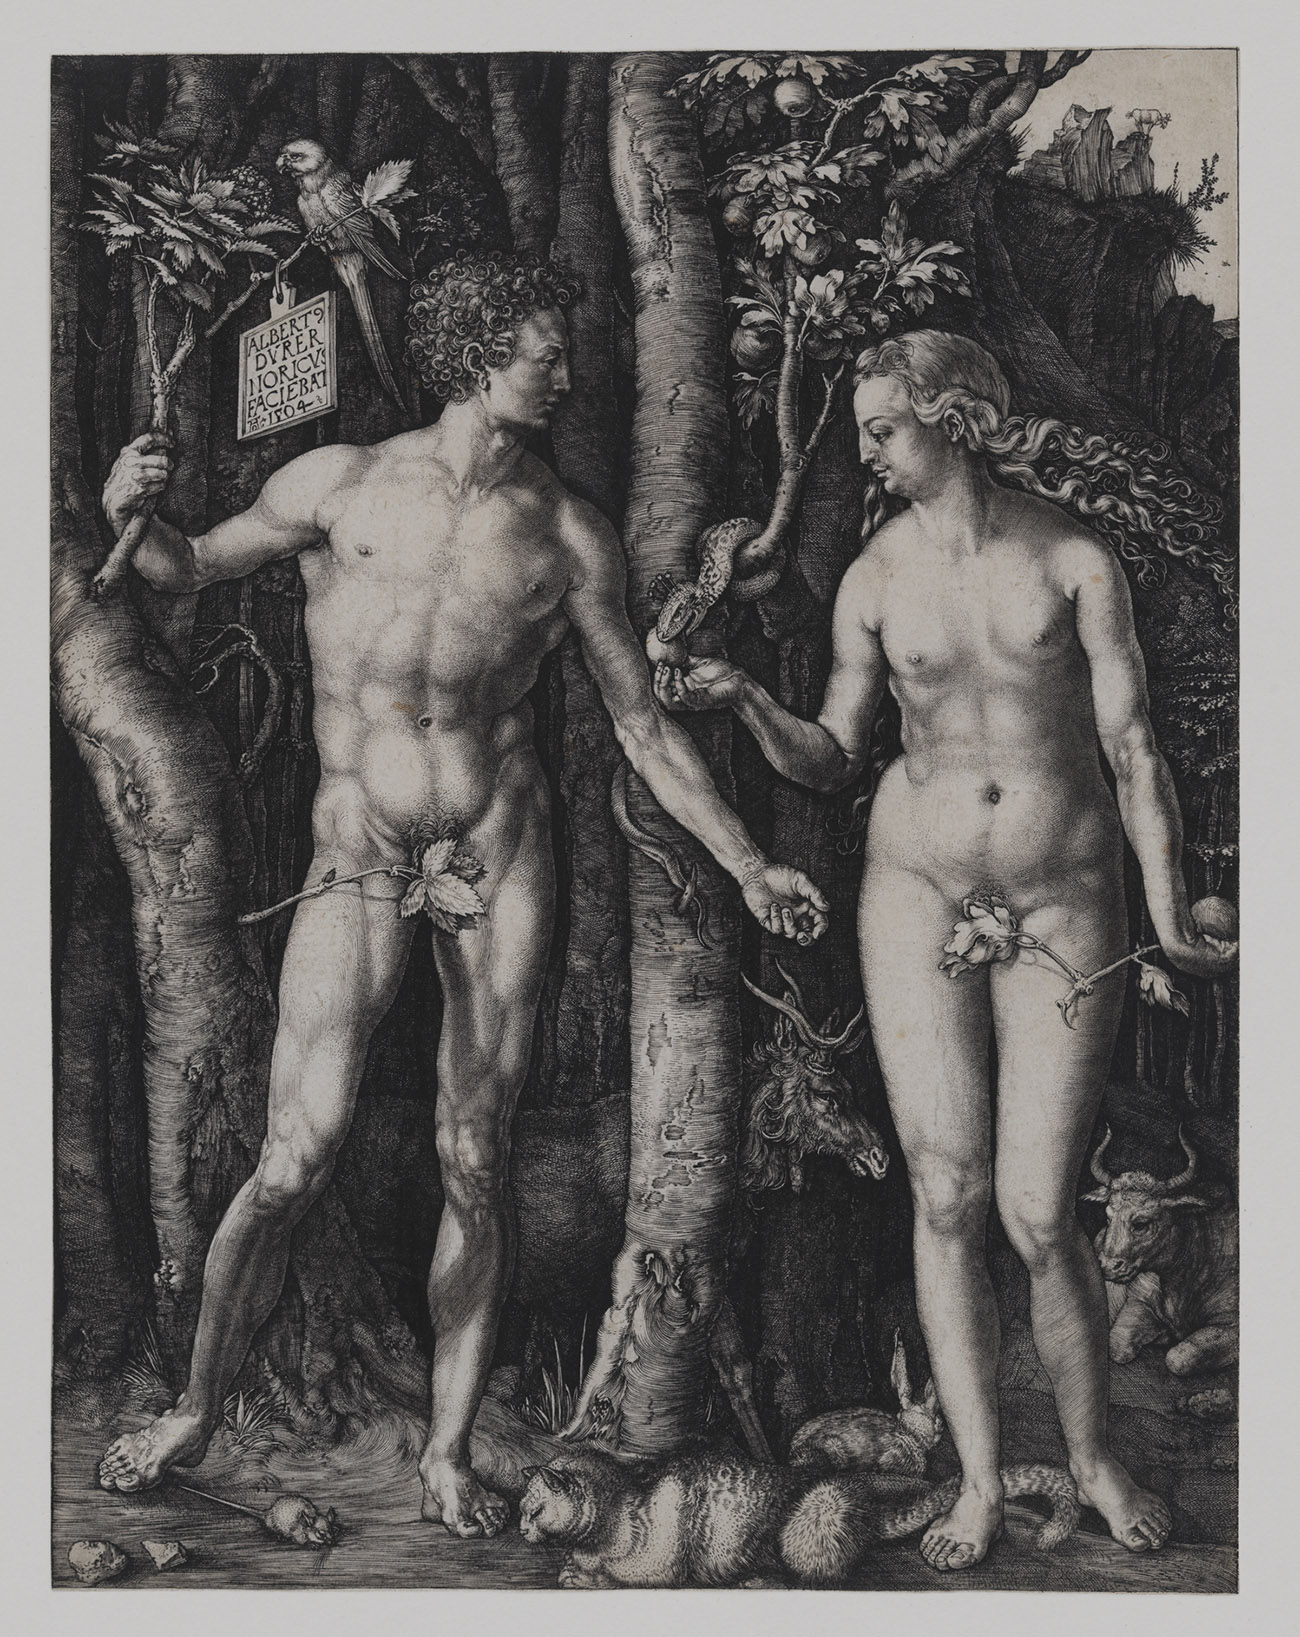 Adam and Eve in the forest. Both are nude and muscular.